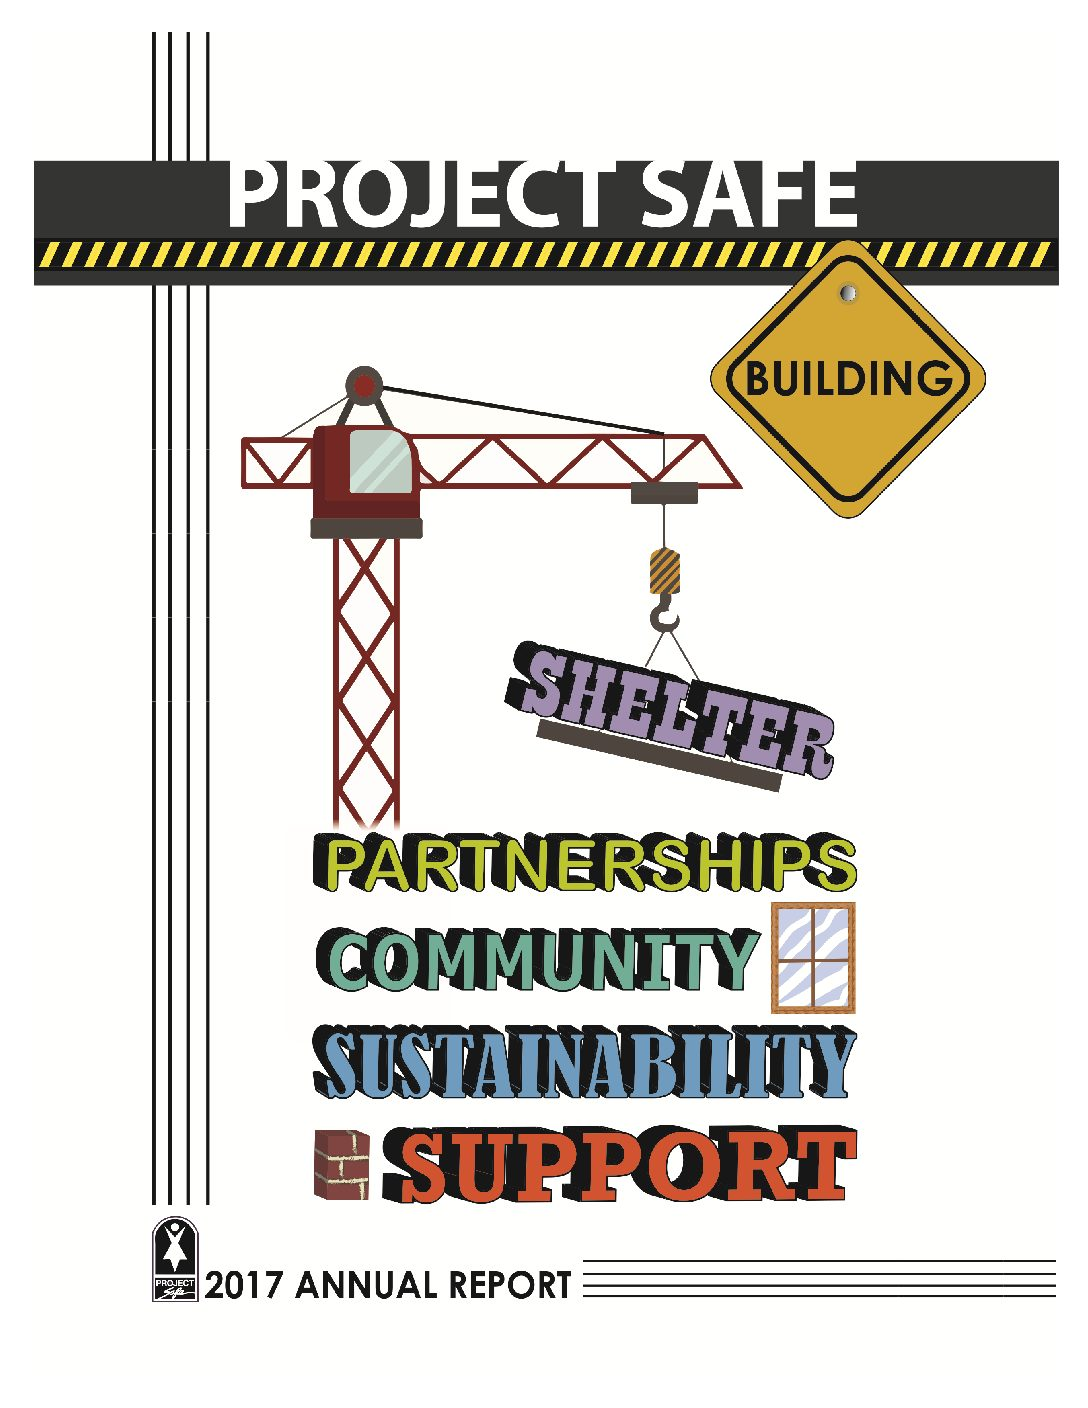 Project Safe's 2017 Annual Report is here!